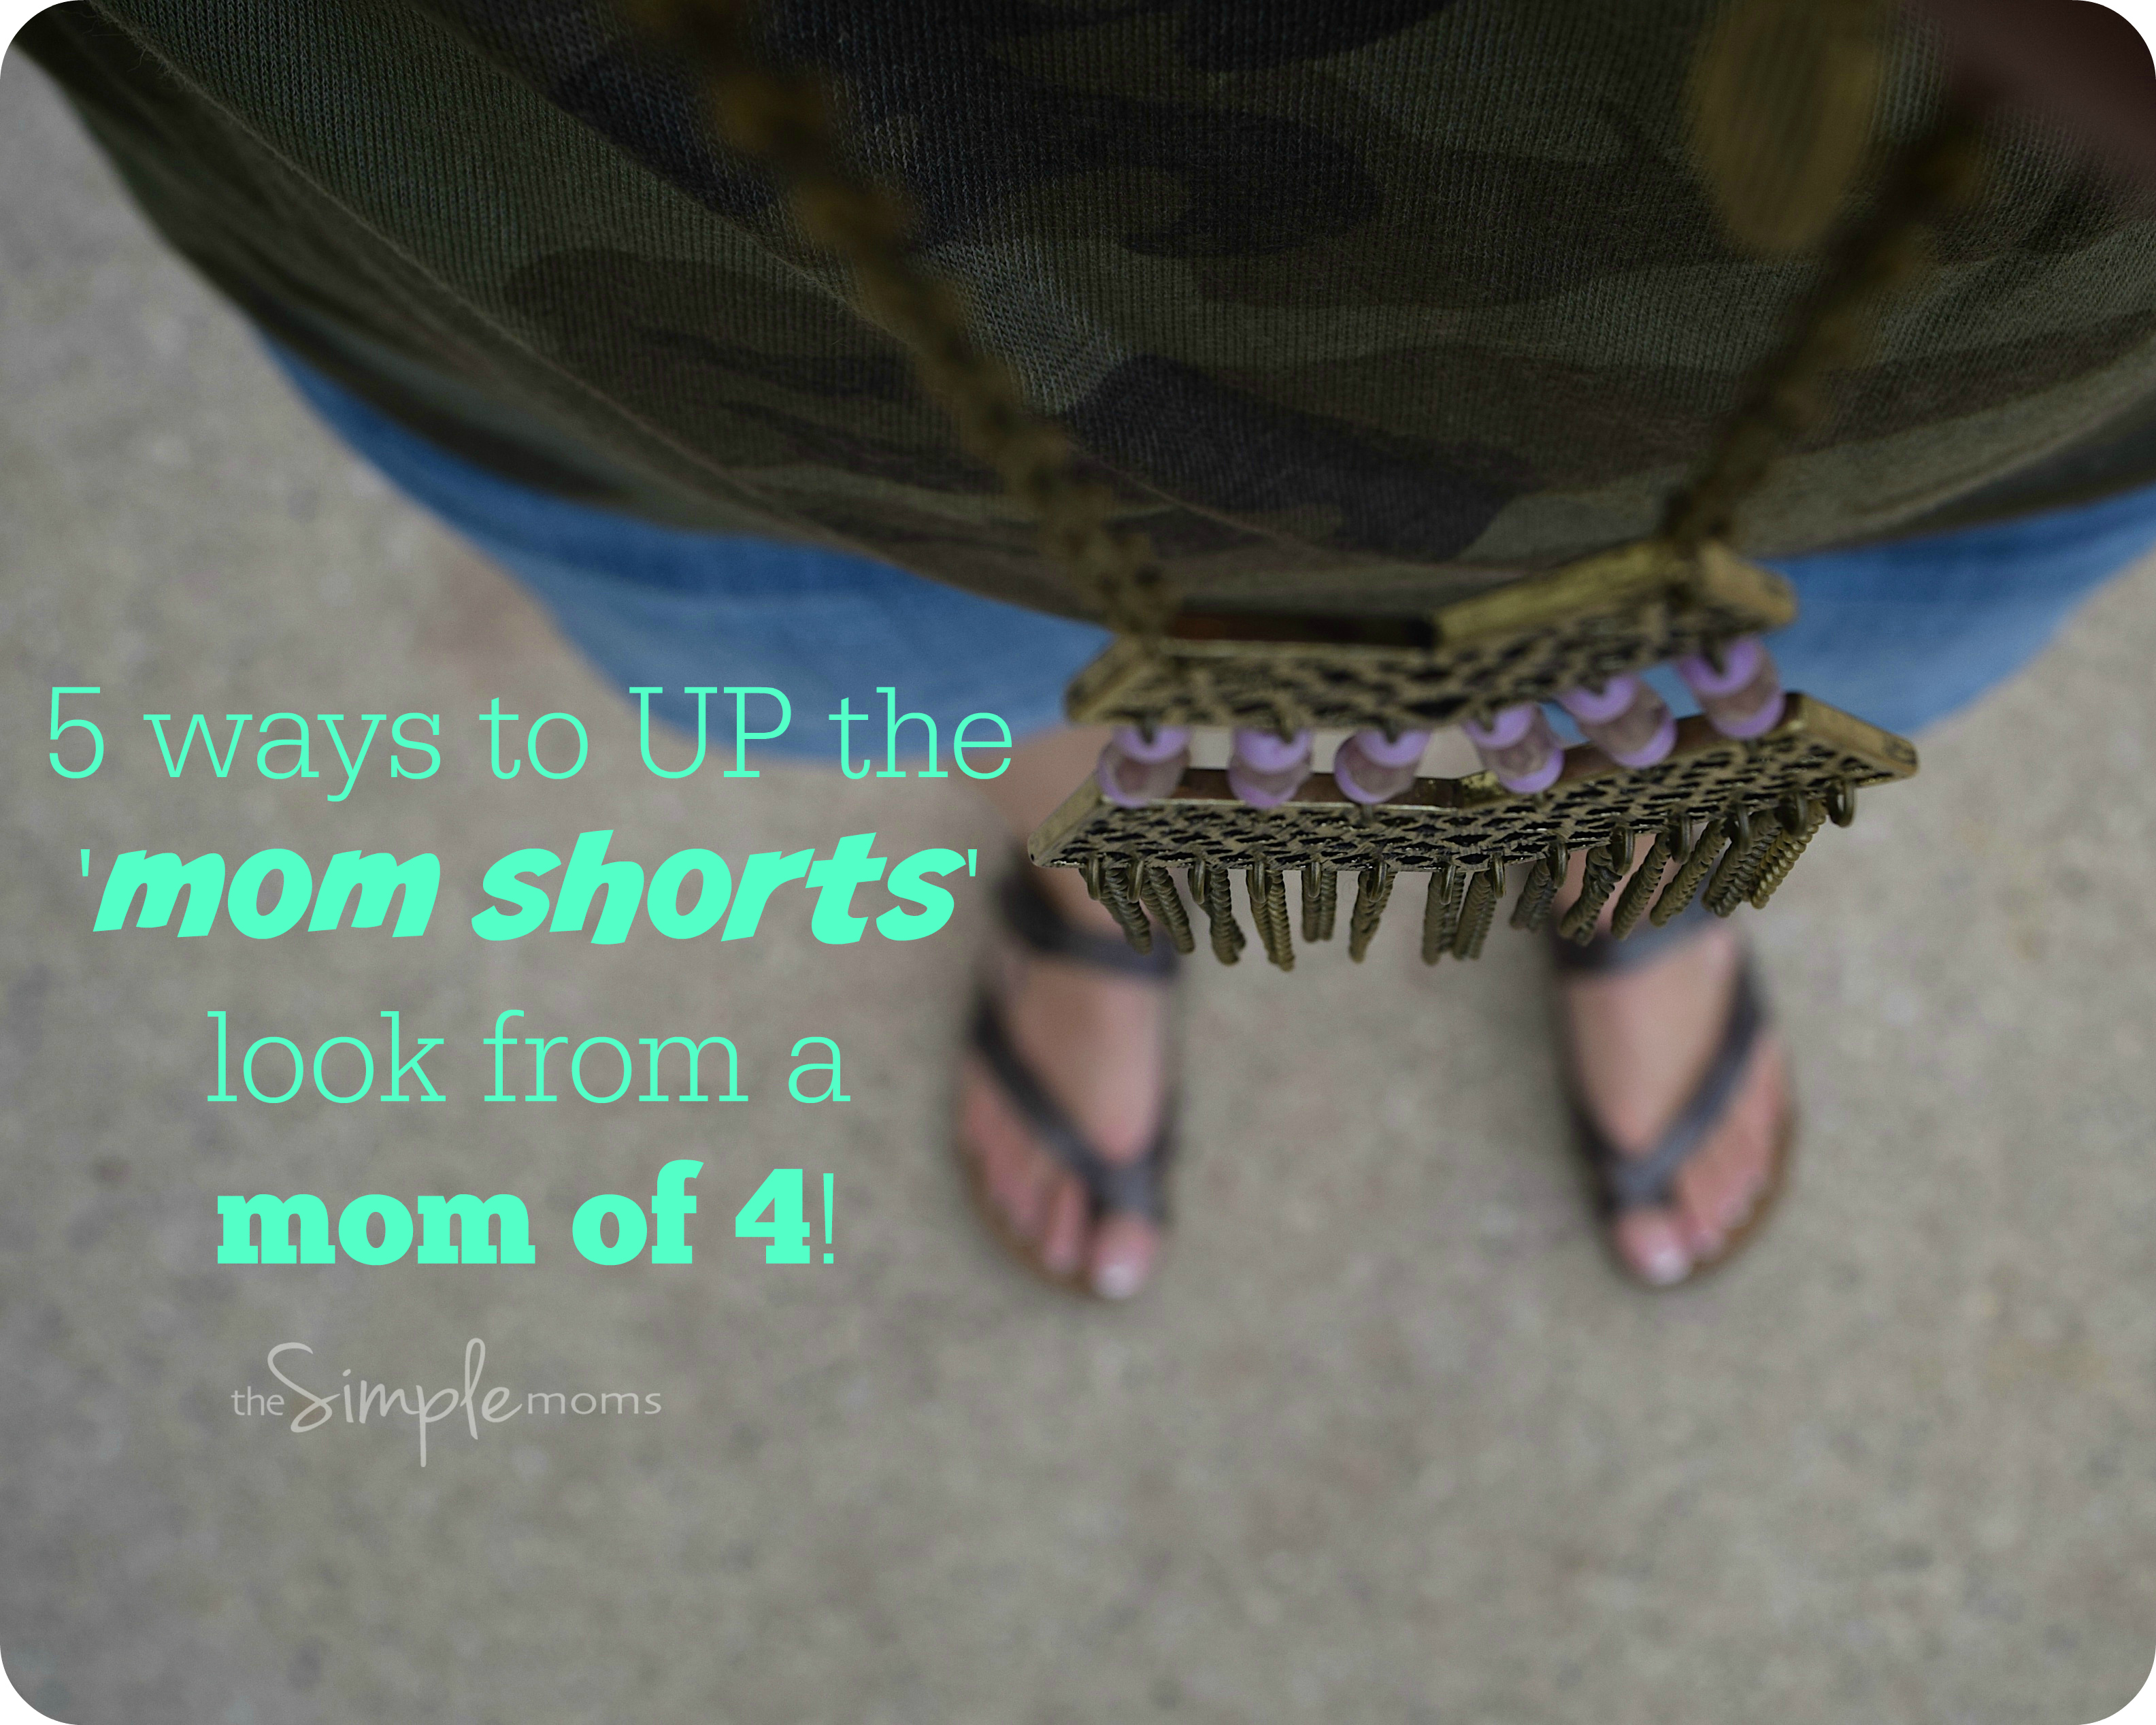 5 ways to up the mom shorts look